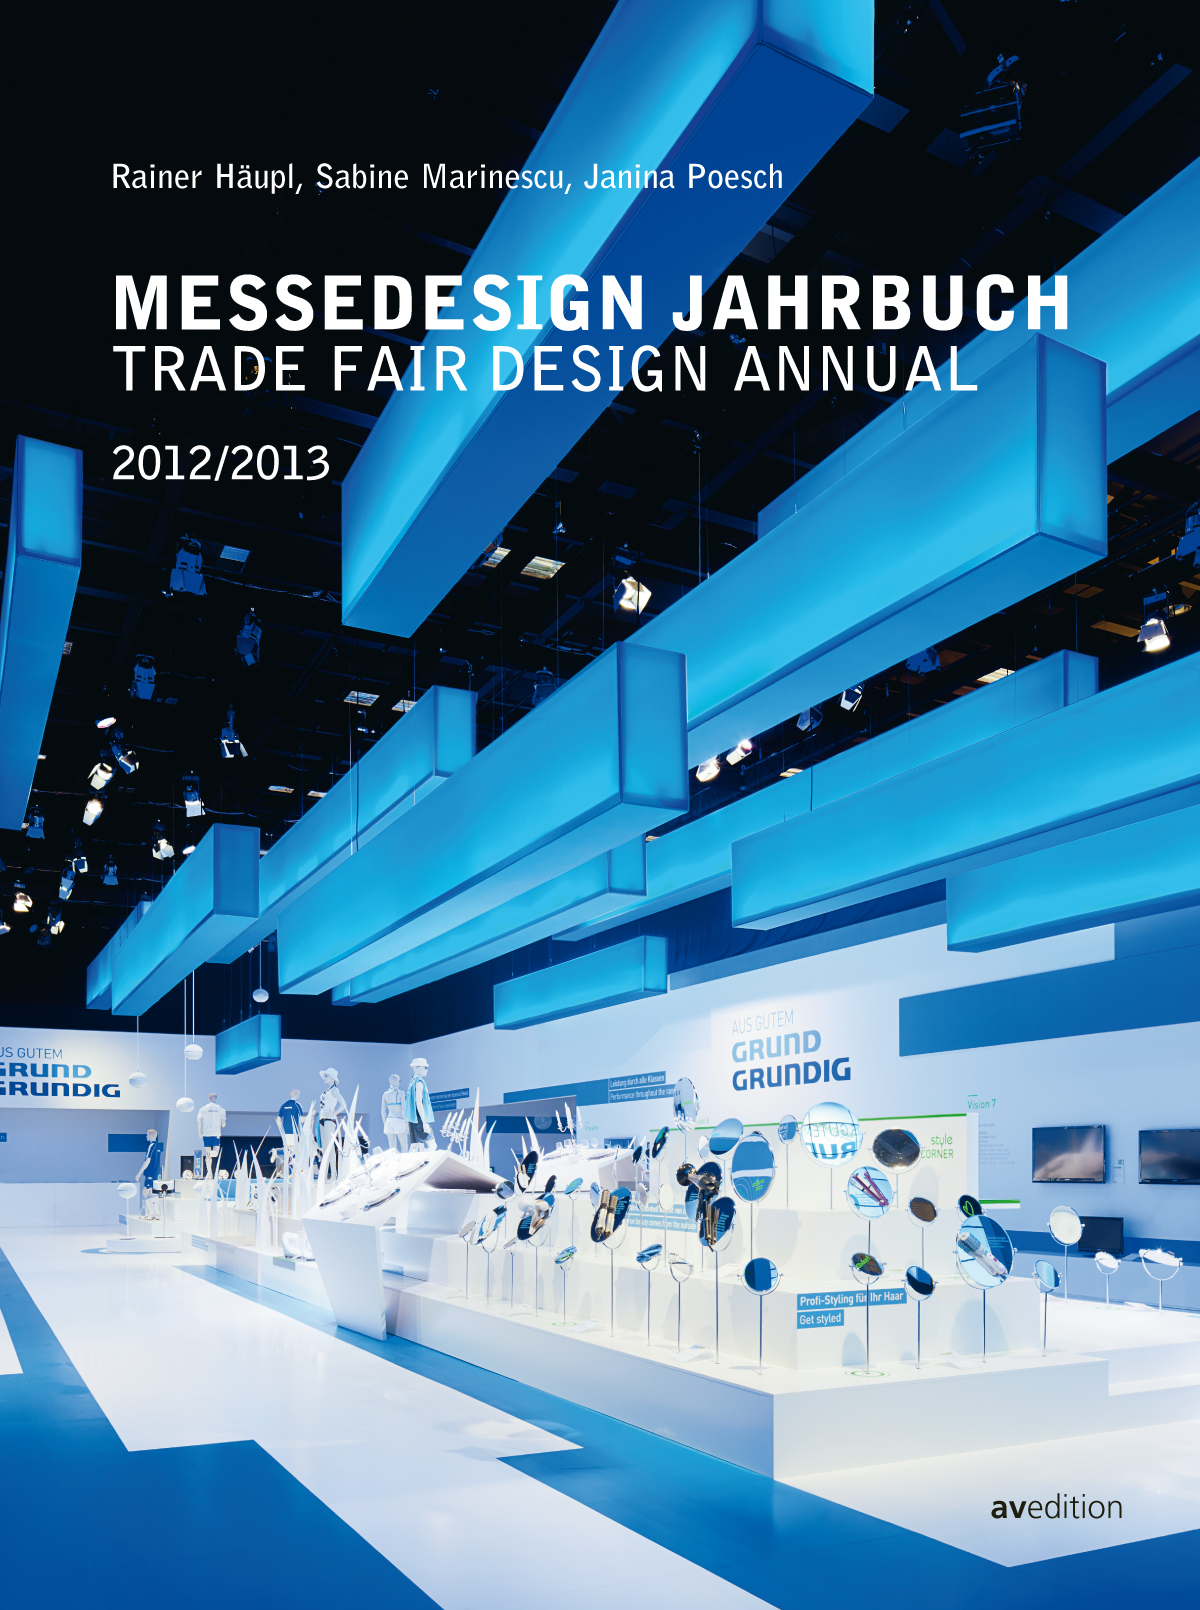 Messedesign Jahrbuch 2012/13